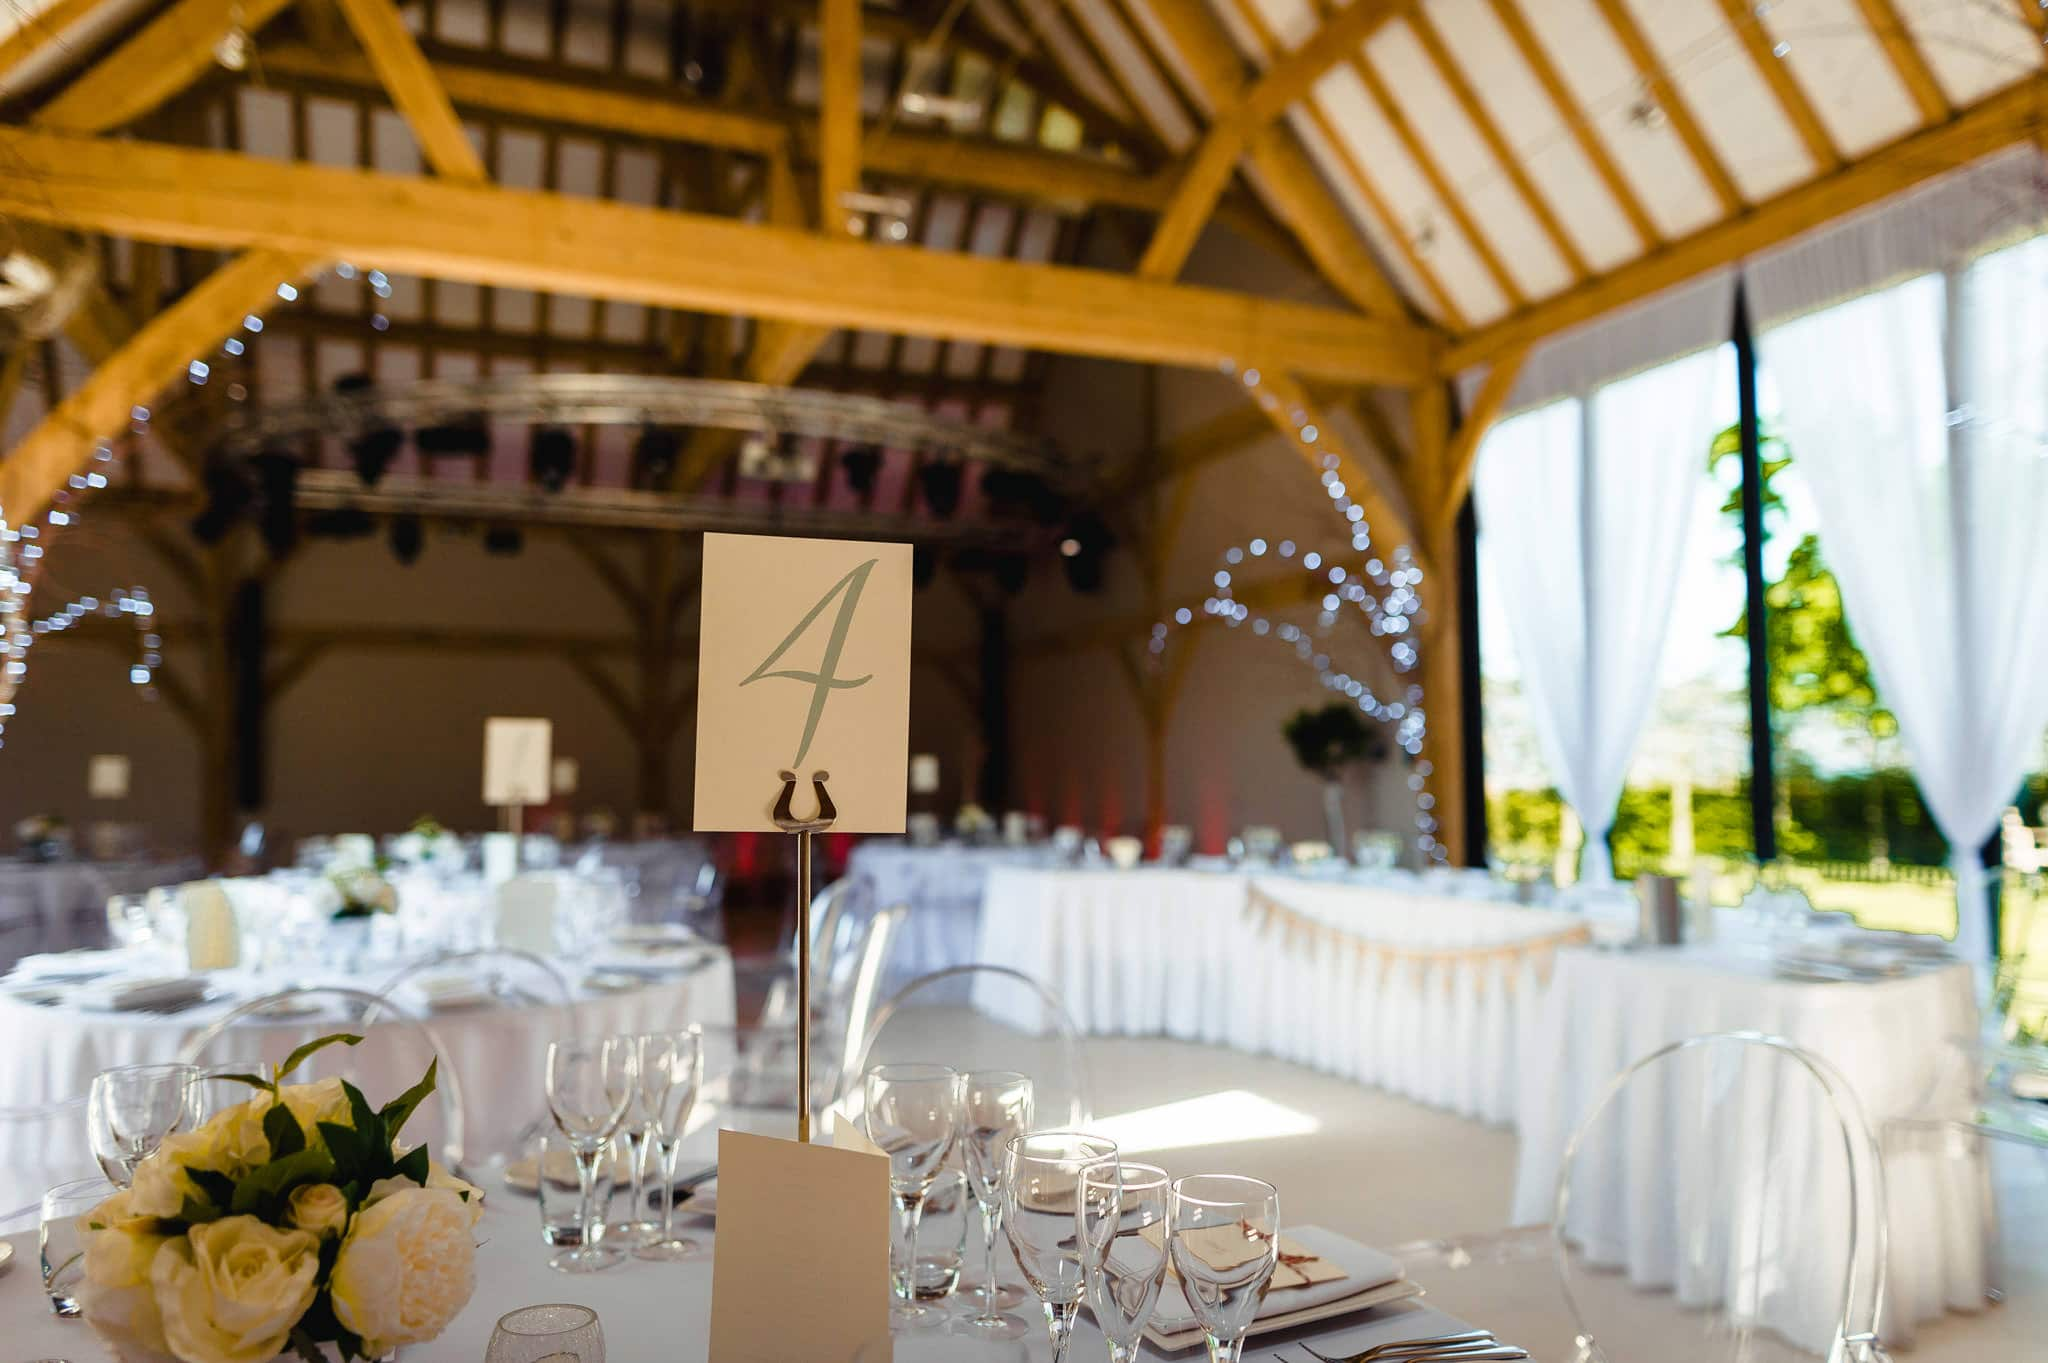 Wedding at Redhouse Barn in Stoke Prior, Worcestershire 4